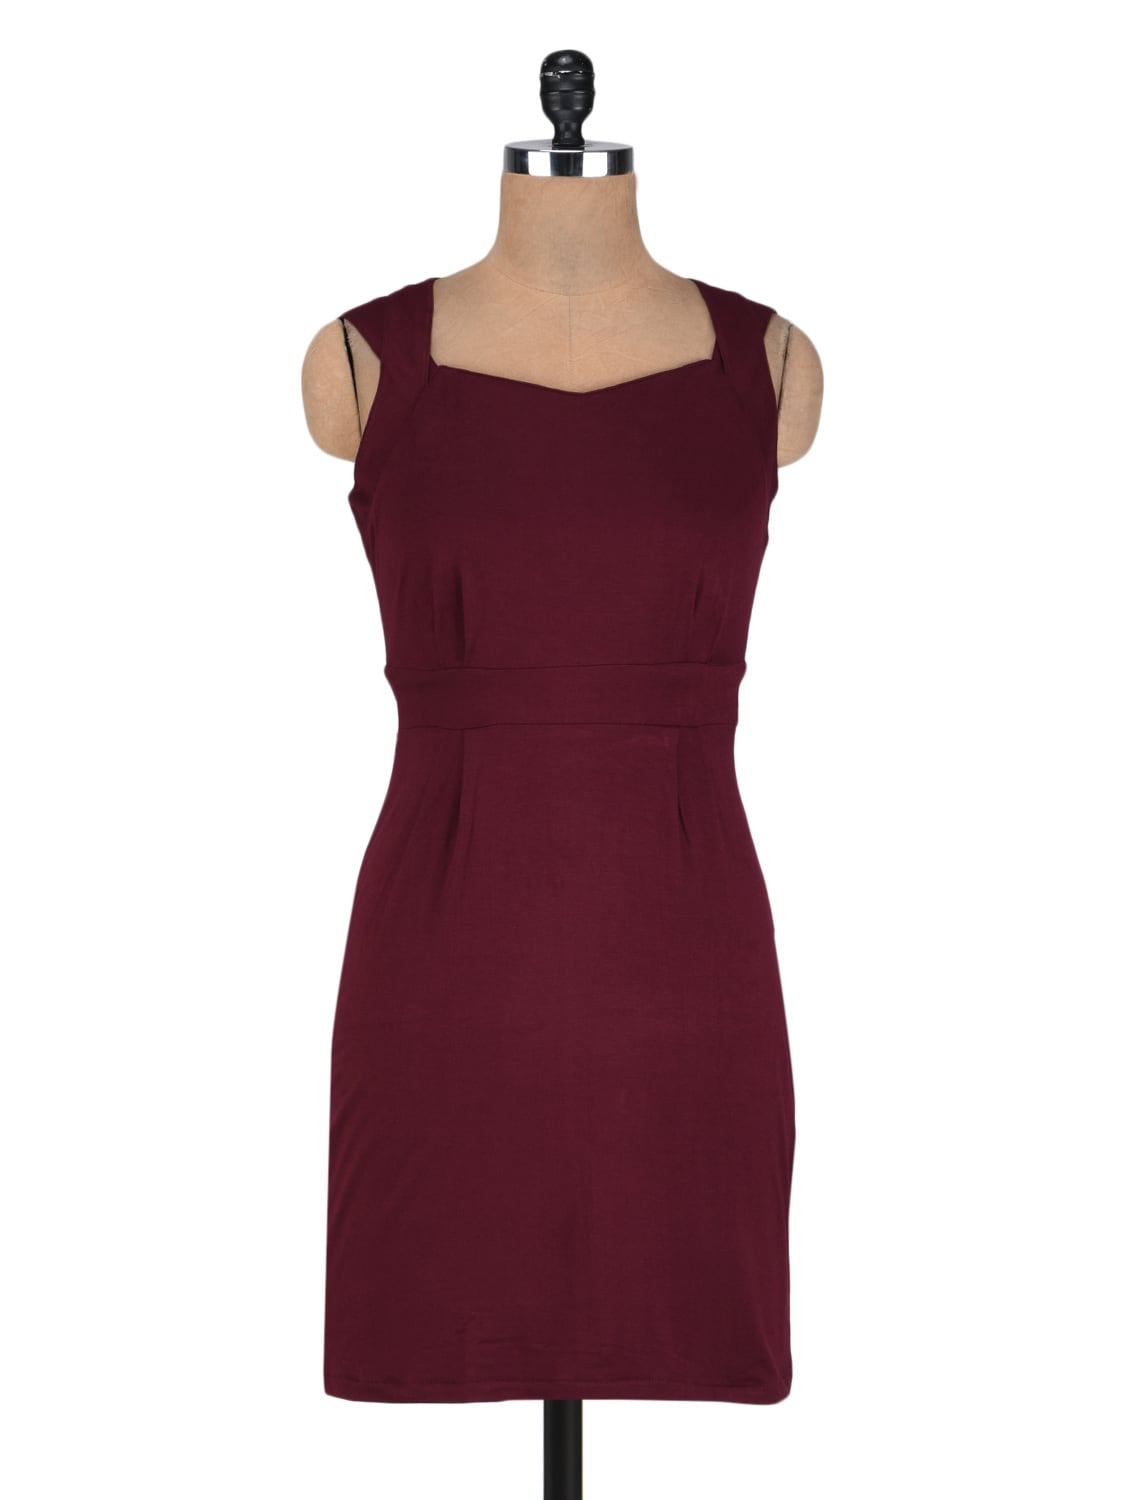 Red Poly Spandex Knit  Bodycon Dress With Back Cut Outs - By